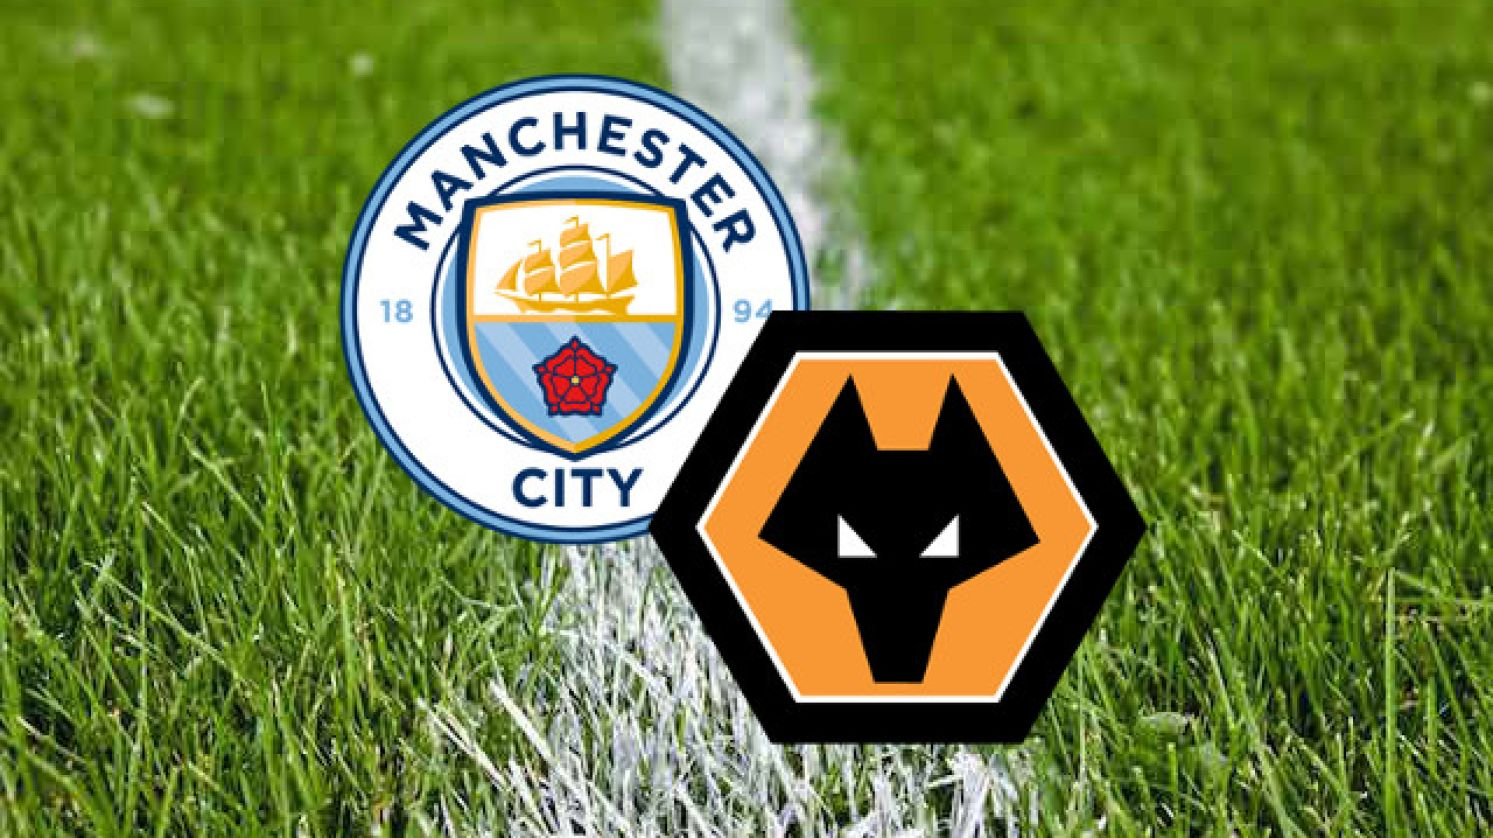 bc527343a44f7 Manchester City - Wolverhampton Wanderers | Šport.sk